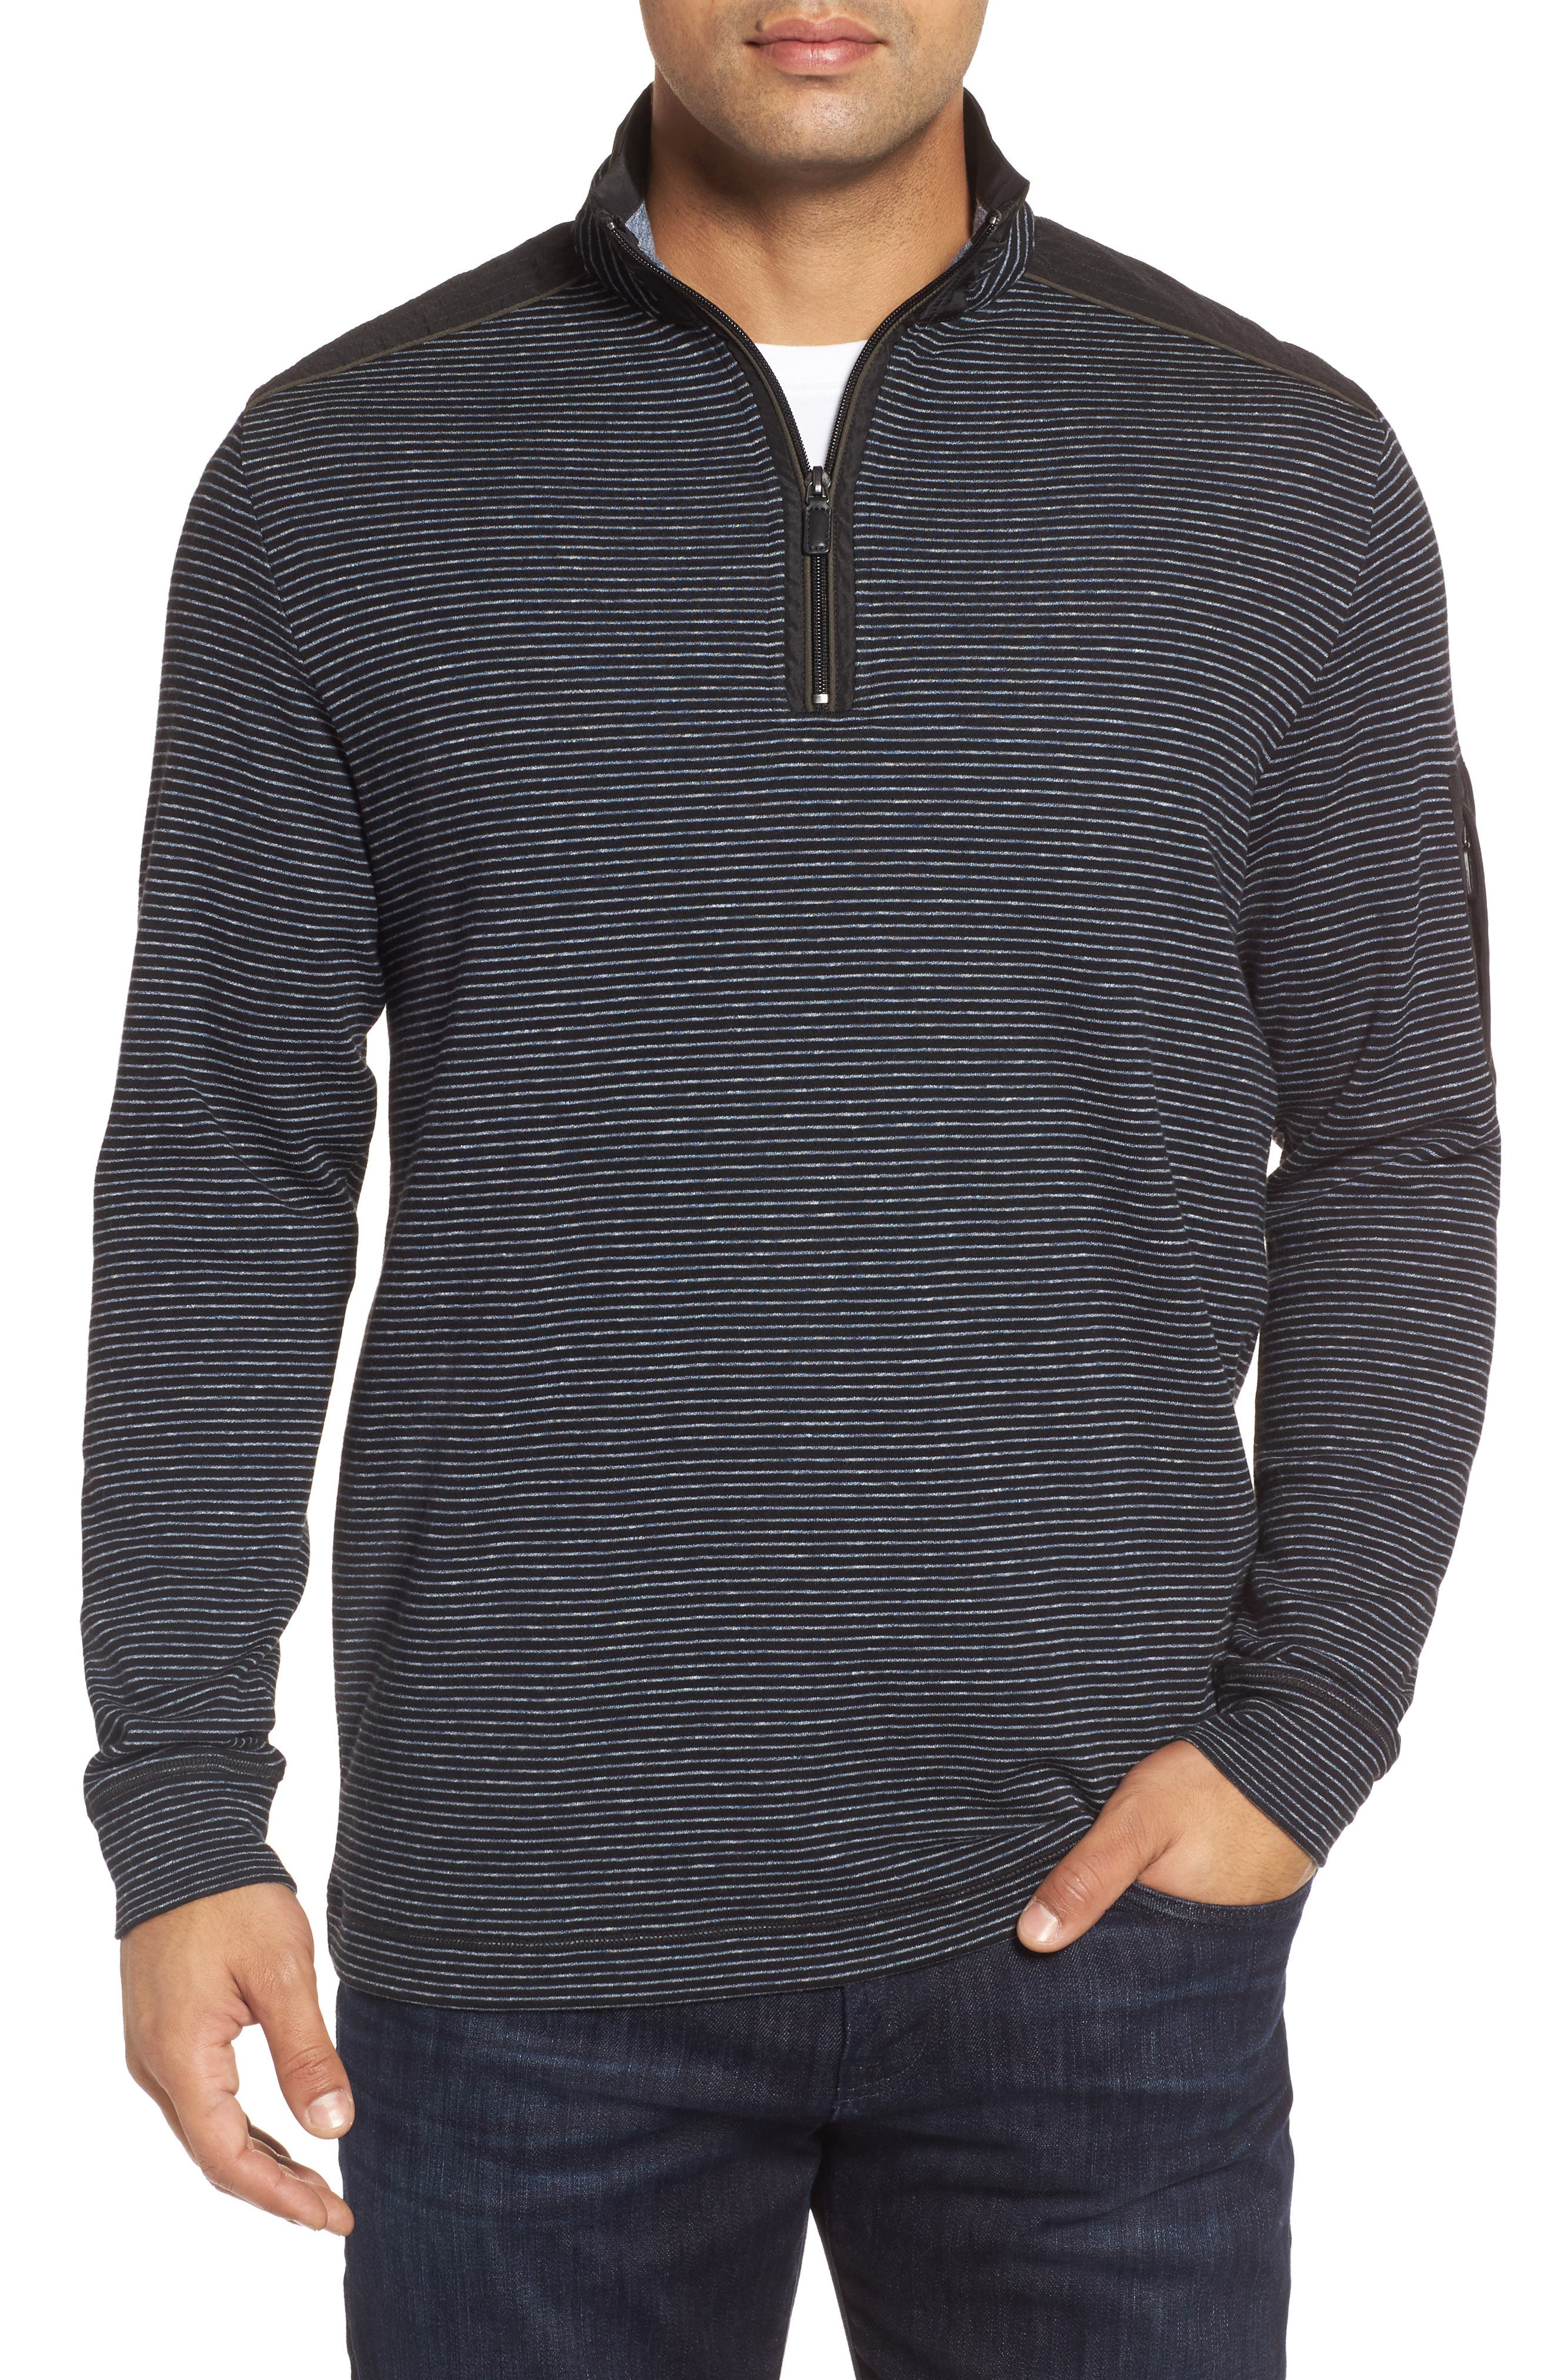 Classic Fit Pinstripe Quarter Zip Pullover,                             Main thumbnail 1, color,                             001